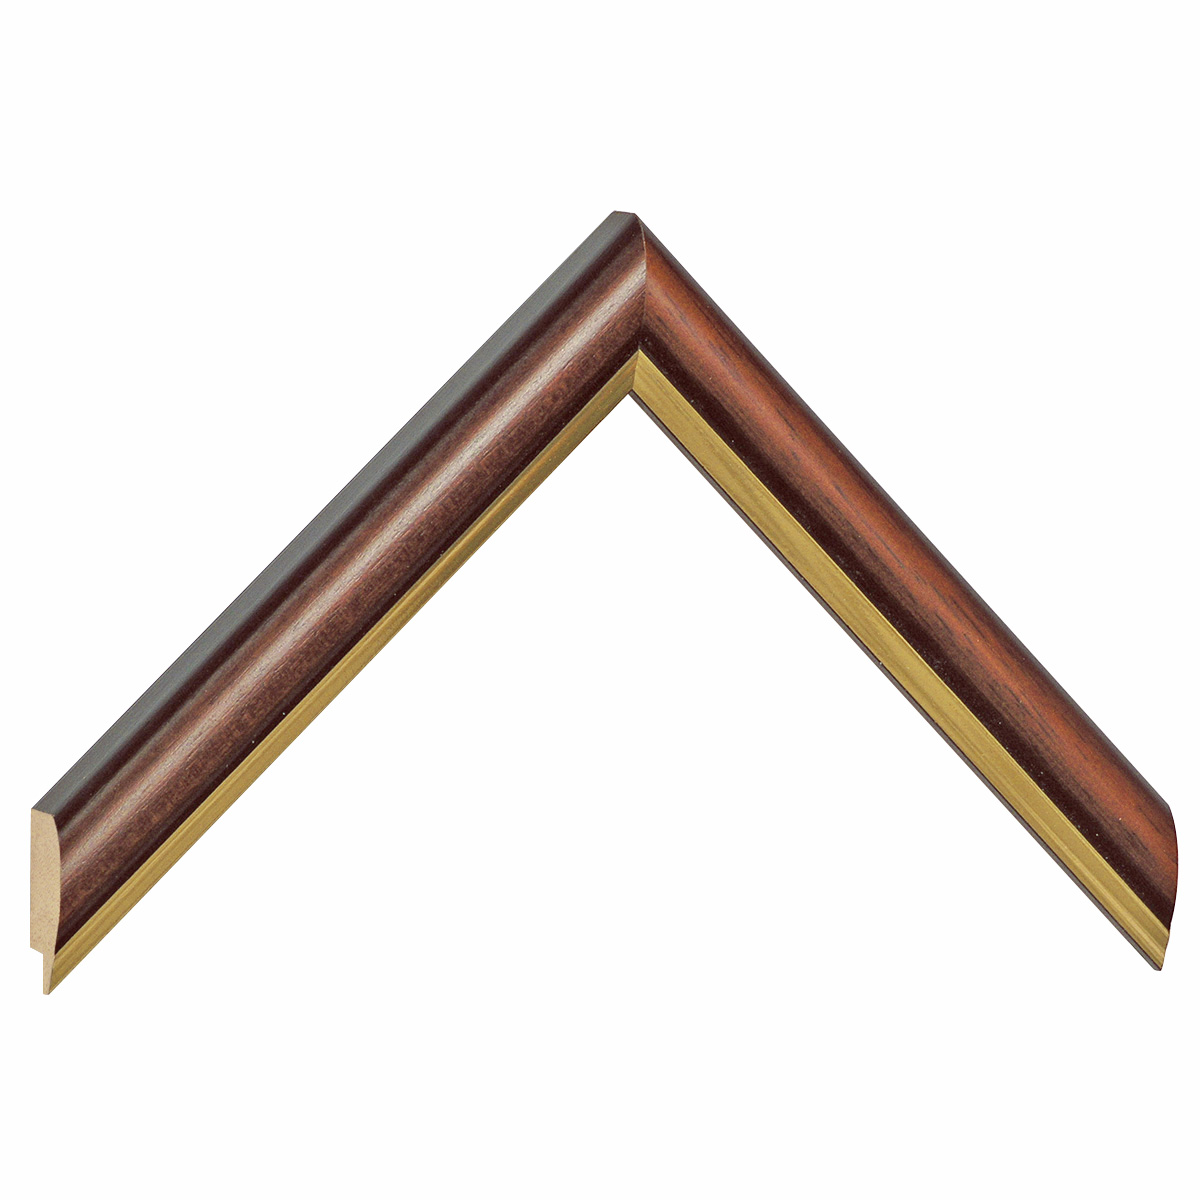 Moulding ayous 23mm - antique walnut with gold edge